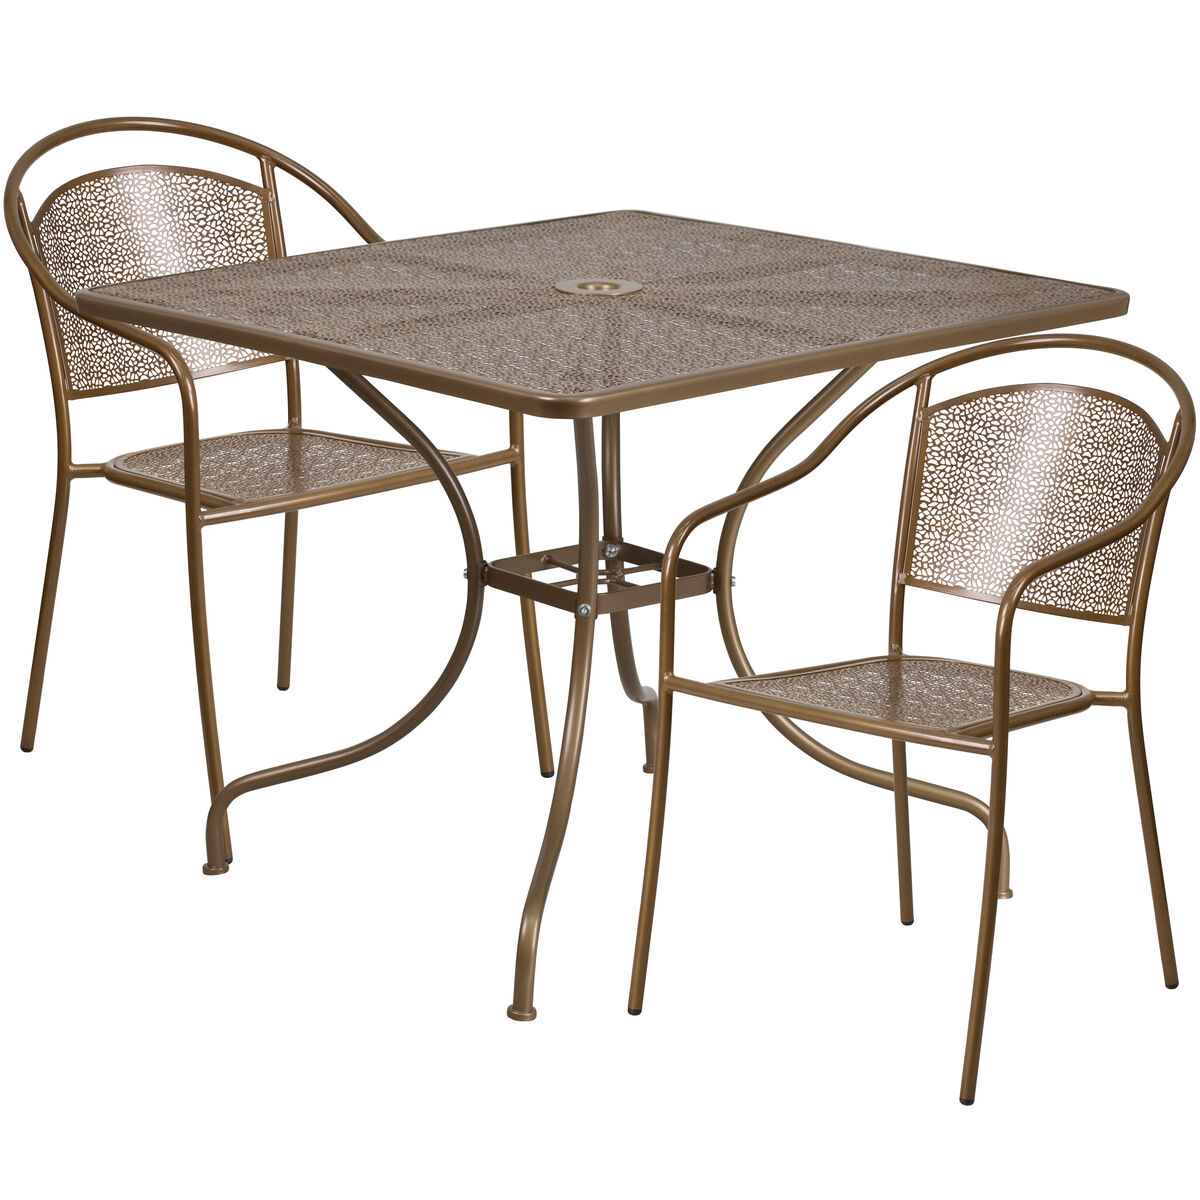 Sq gold patio table set co chr gd gg